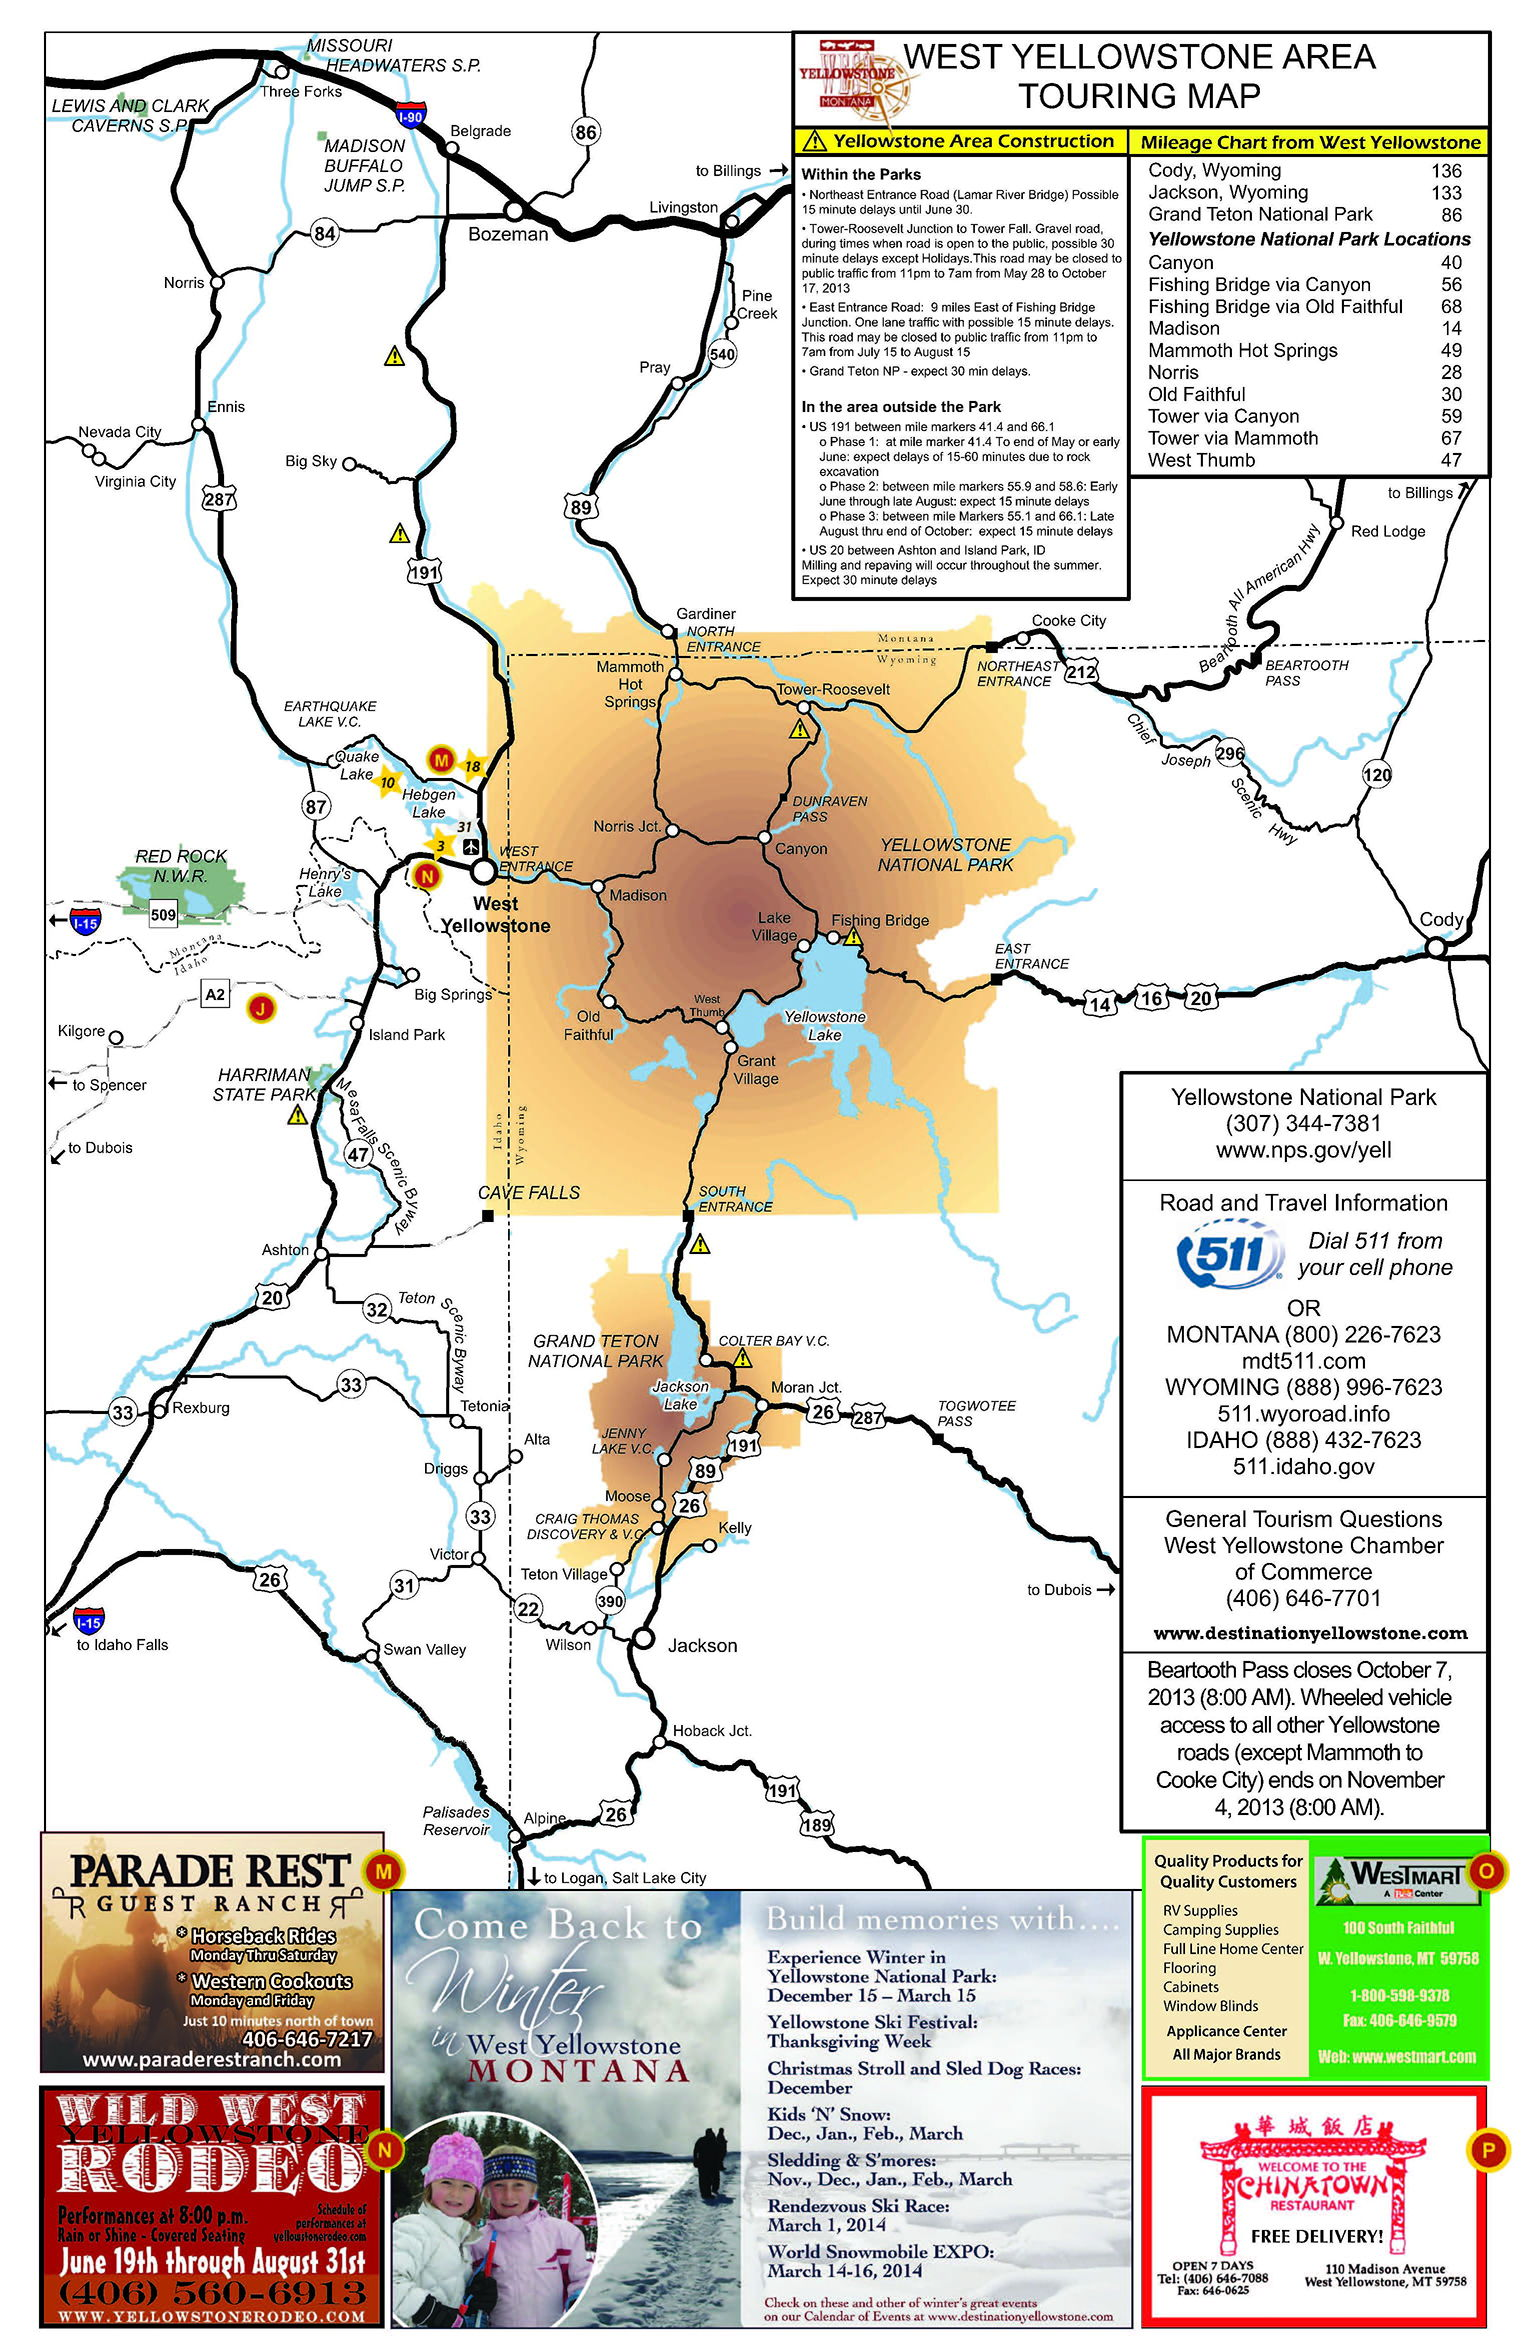 http://www.townofwestyellowstone.com/wp-content/uploads/2012/12/west-yellowstone-map.jpg